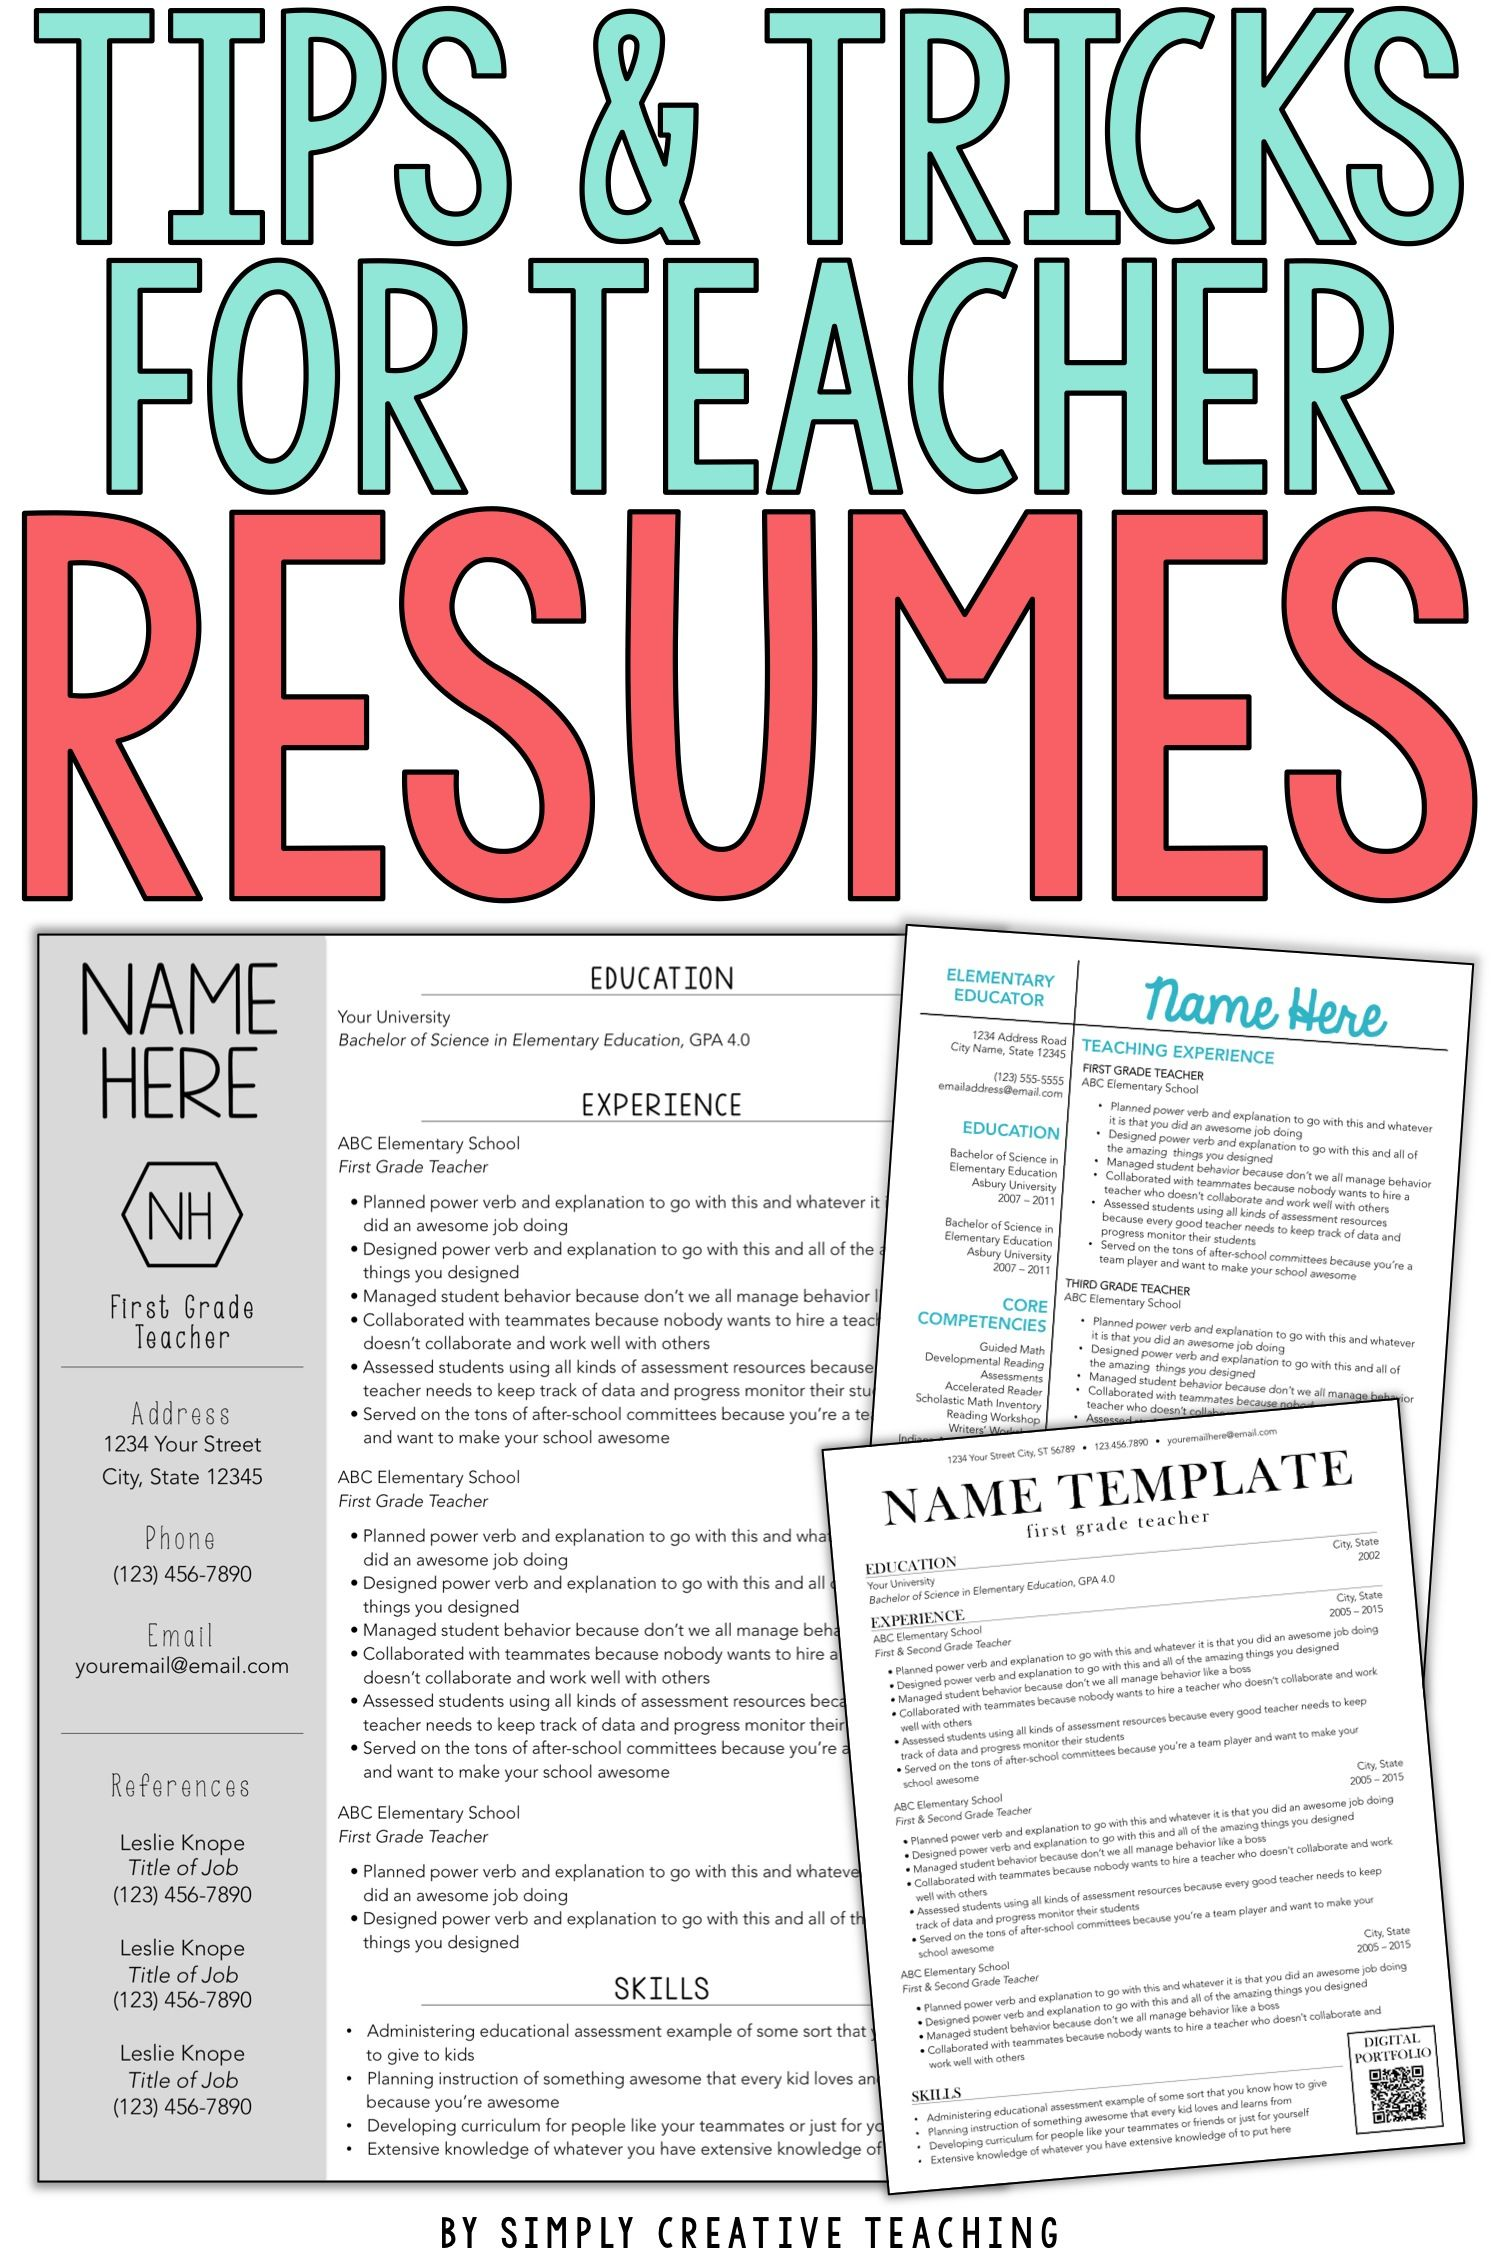 Land your ideal teaching job whether it's your first year and you have no experience or you just want to update your teaching portfolio these editable teacher resumes are unique and stand out The design of each resume template for teachers is simple and creative and the design ideas included are the perfect way to showcase your skills These editable resumes can work for elementary middle or high school teachers even special area teachers or special education teachers